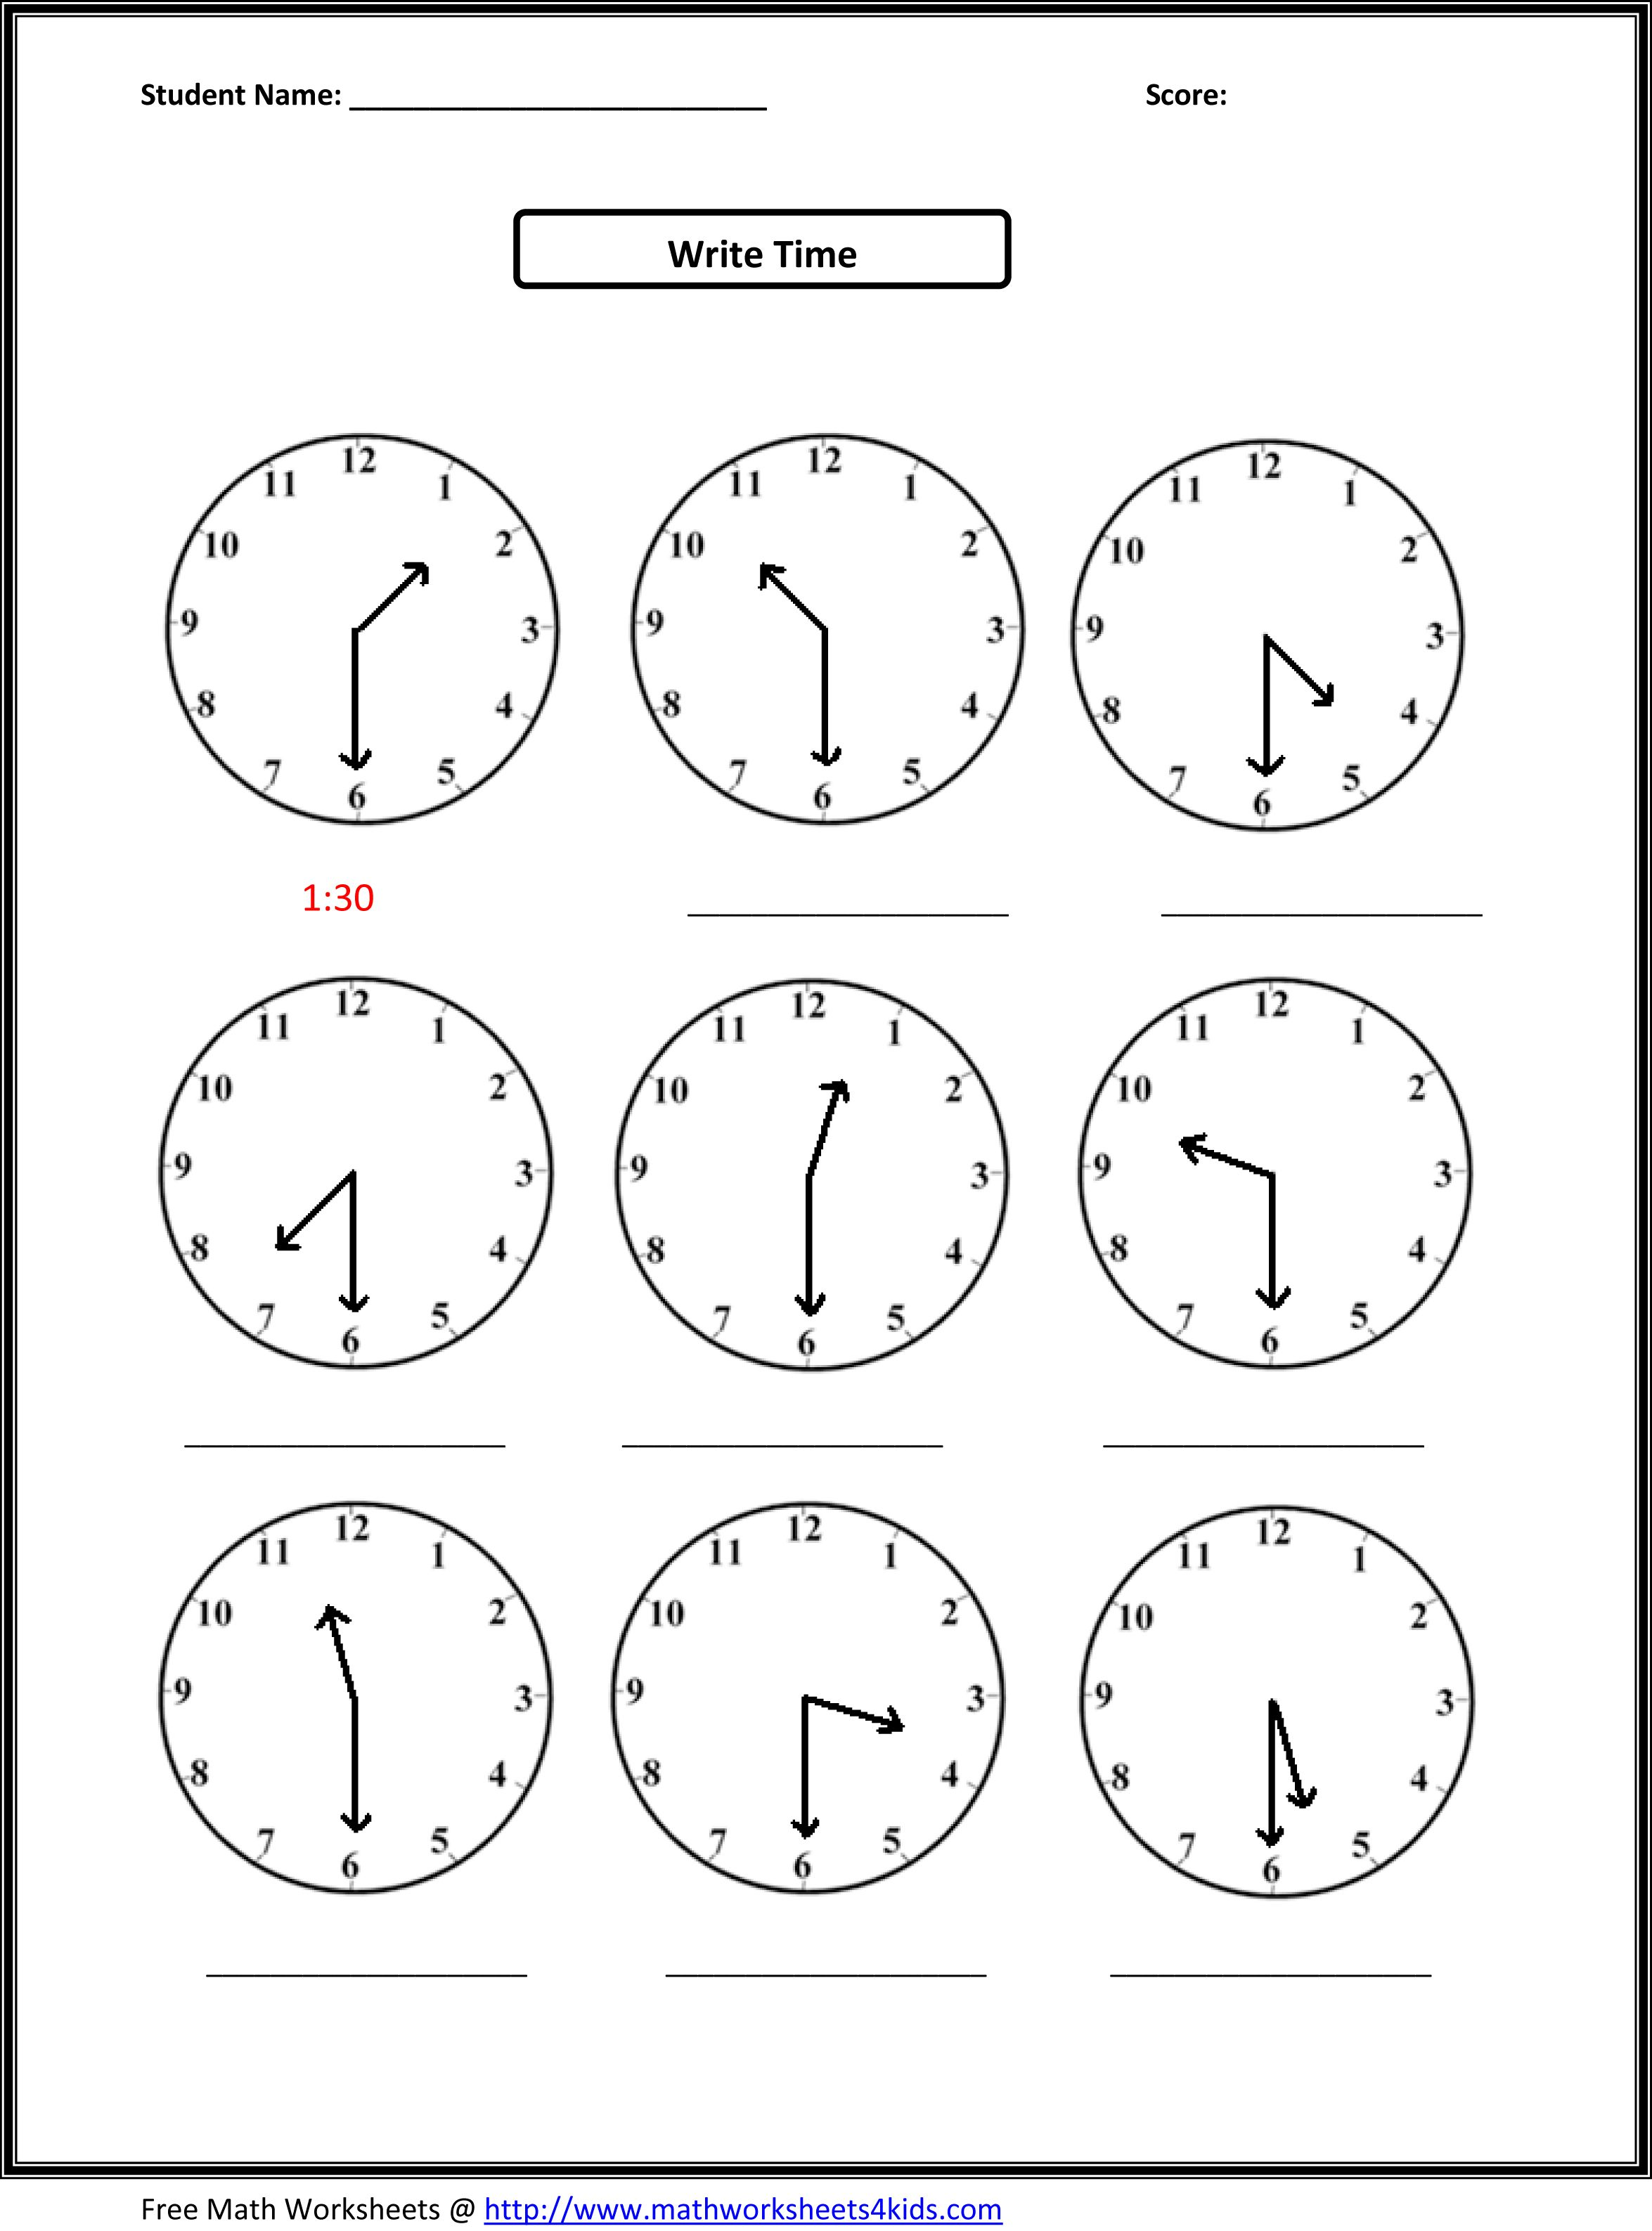 Proatmealus  Ravishing Worksheet On Time For Grade   Reocurent With Fair Free Printable Telling Time Worksheets Nd Grade  Reocurent With Amusing Simple Substitution Worksheet Also Clock Practice Worksheet In Addition Strengths Based Assessment Worksheet And Printable Worksheets Free As Well As Maths Worksheet For Grade  Additionally Nd Grade Fact Family Worksheets From Reocurentcom With Proatmealus  Fair Worksheet On Time For Grade   Reocurent With Amusing Free Printable Telling Time Worksheets Nd Grade  Reocurent And Ravishing Simple Substitution Worksheet Also Clock Practice Worksheet In Addition Strengths Based Assessment Worksheet From Reocurentcom